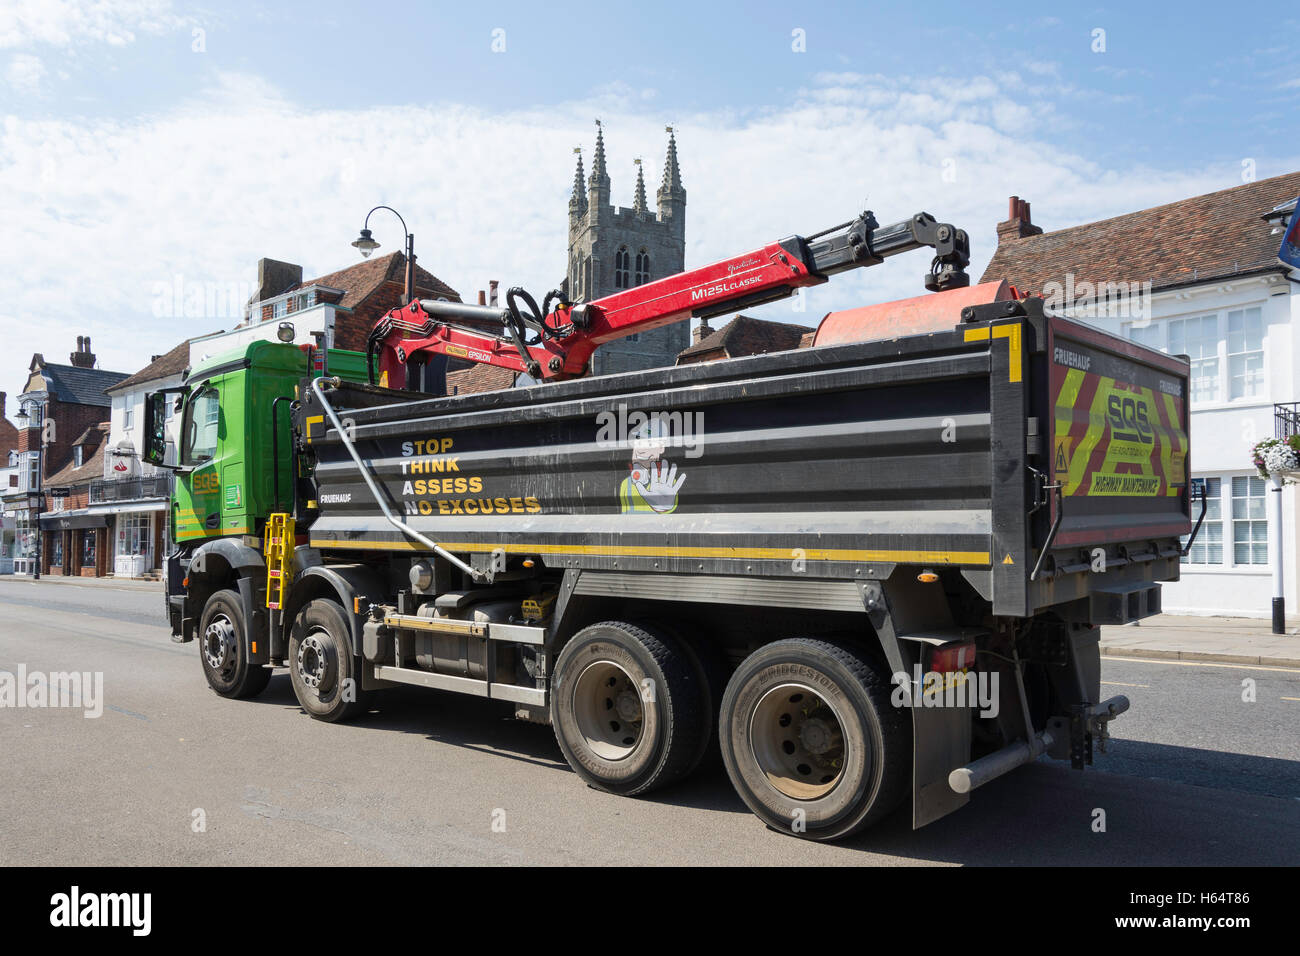 Heavy lorry driving on High Street, Tenterden, Kent, England, United Kingdom - Stock Image